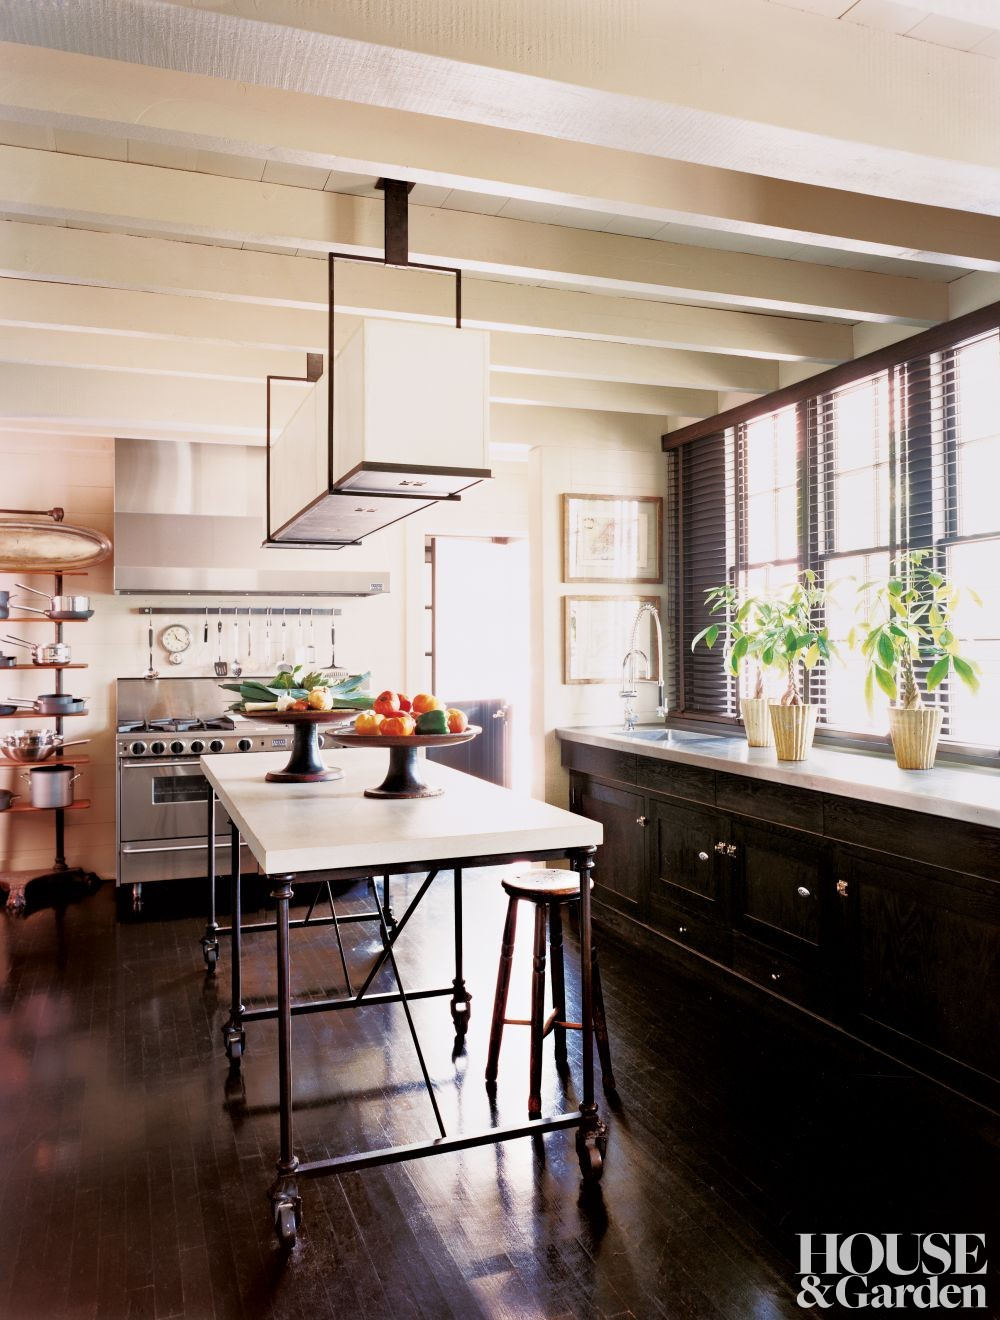 Traditional kitchen by mcalpine tankersley architecture by for Style kitchen nashville